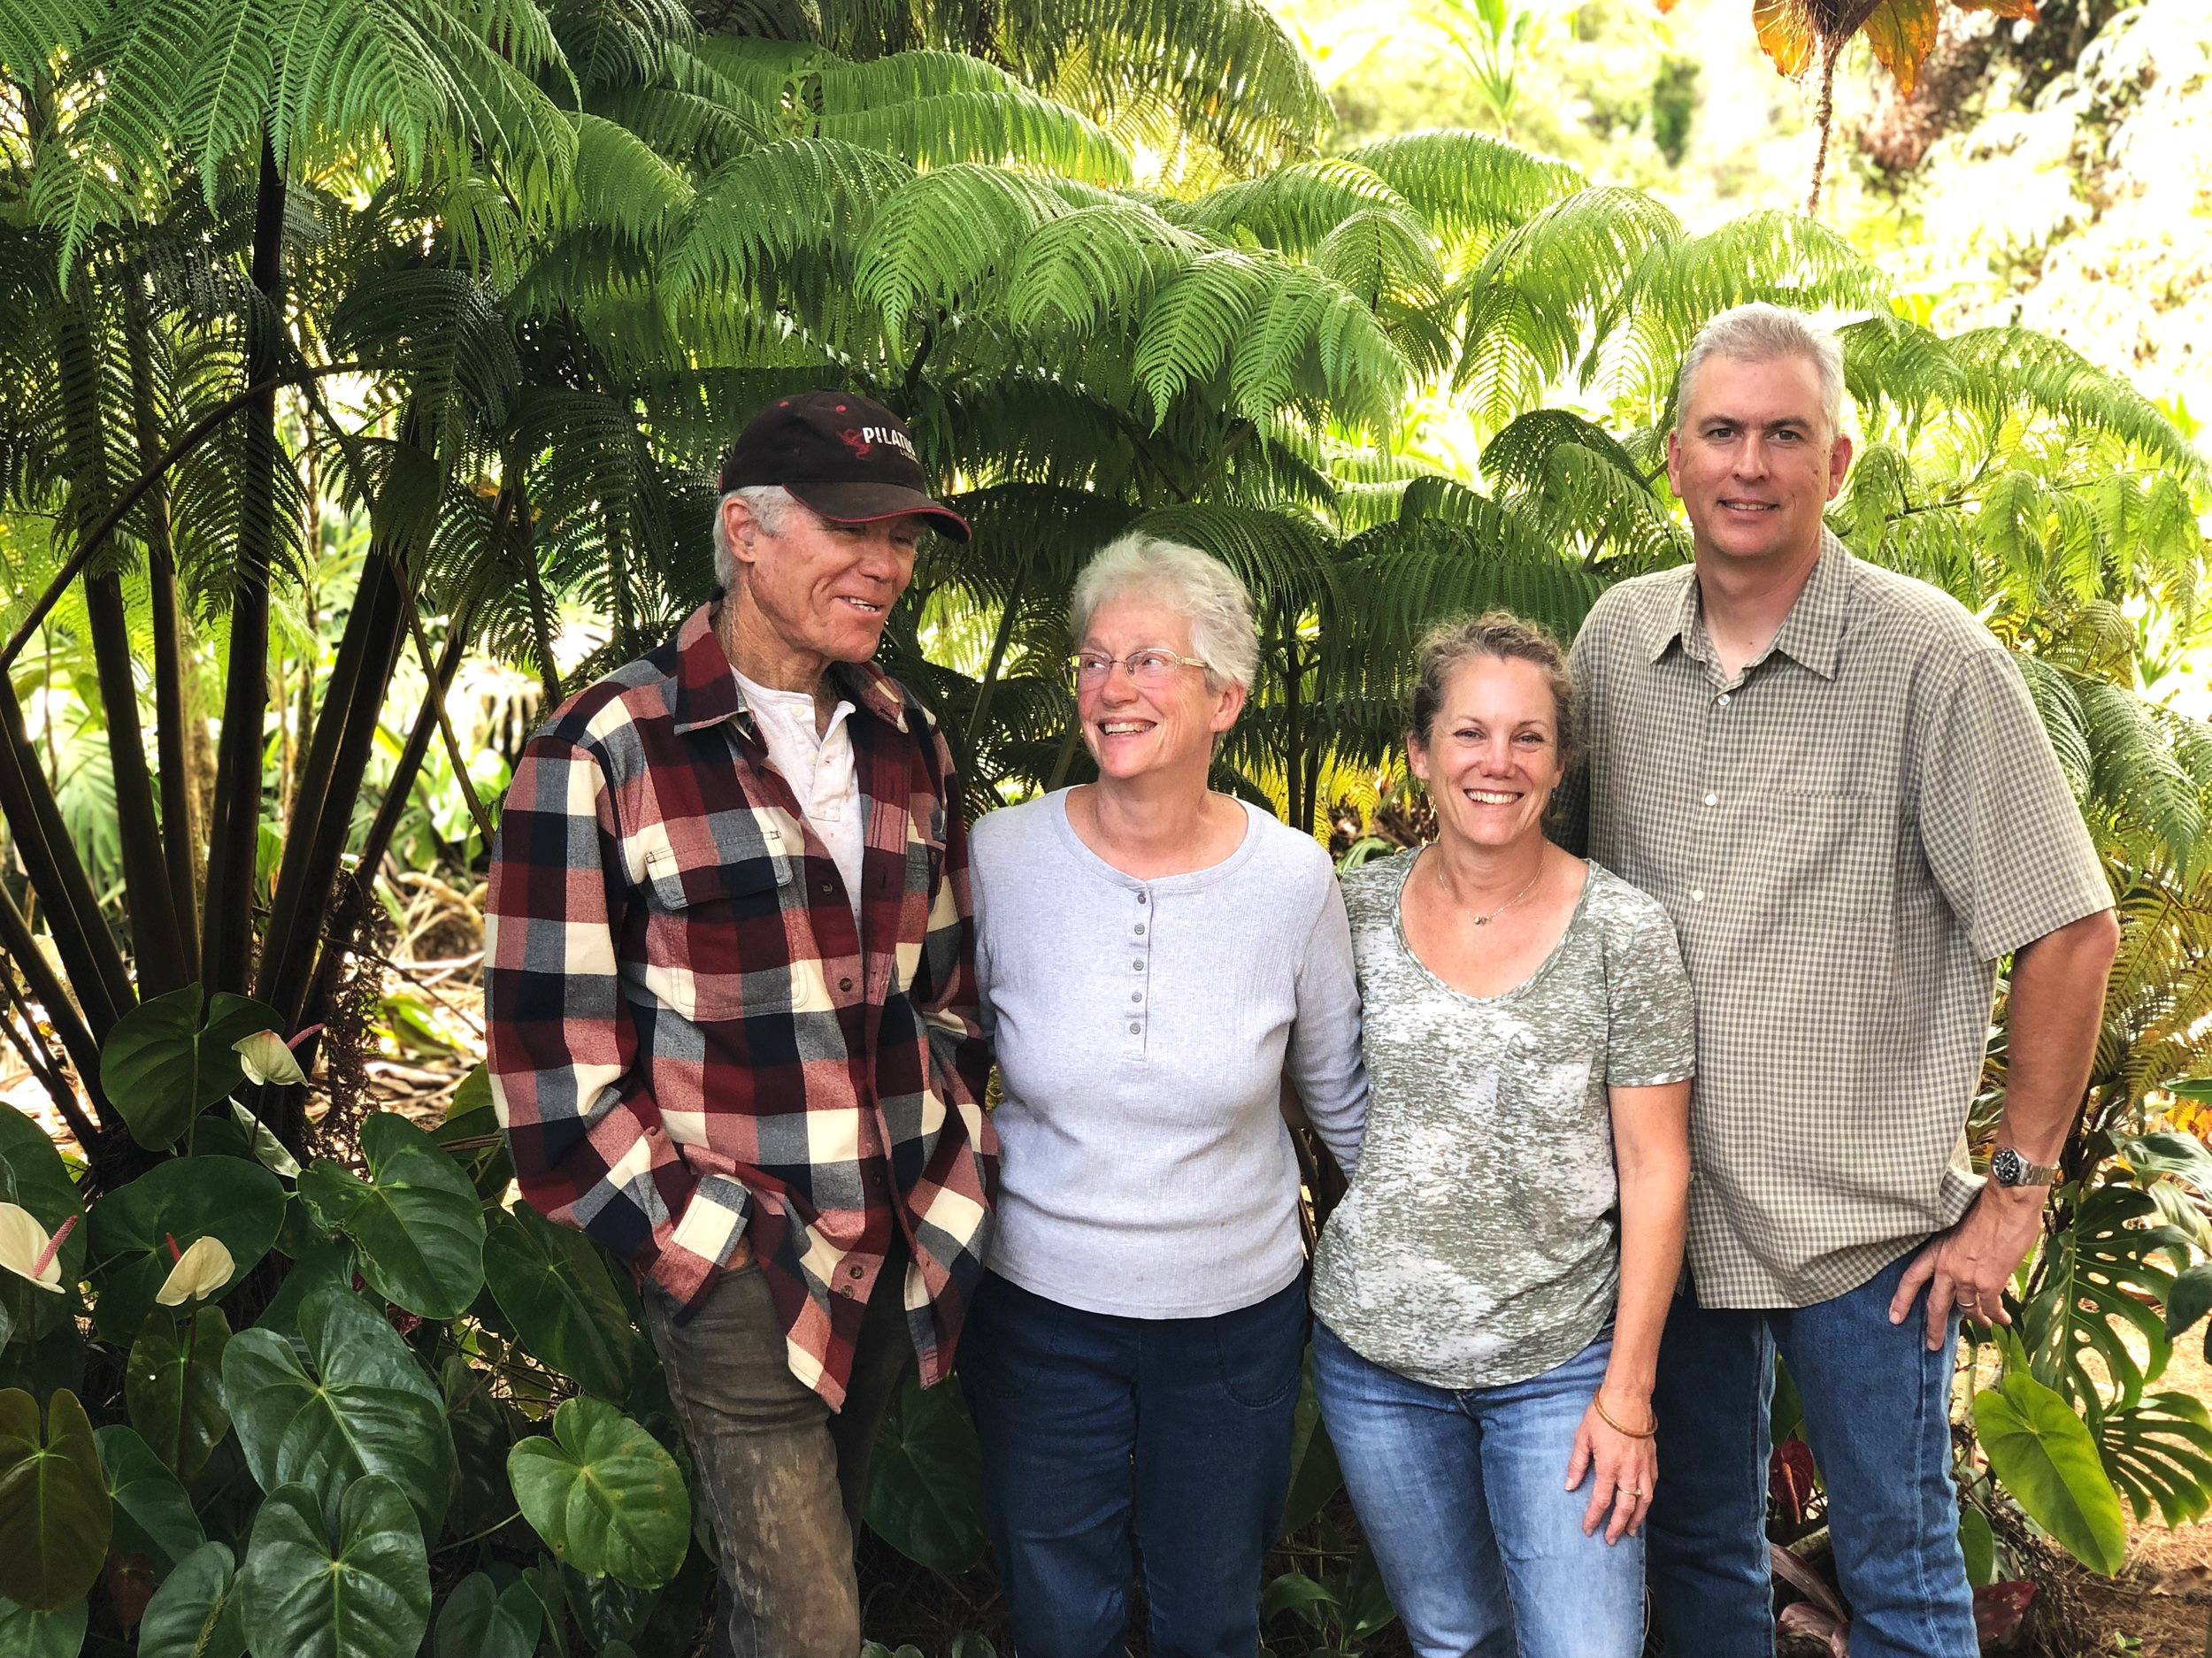 The family behind Always Anthuriums: (L-R) Founders Jim & Norma Watt, and their daughter and son-in-law Heidi and Brad Gingrich.